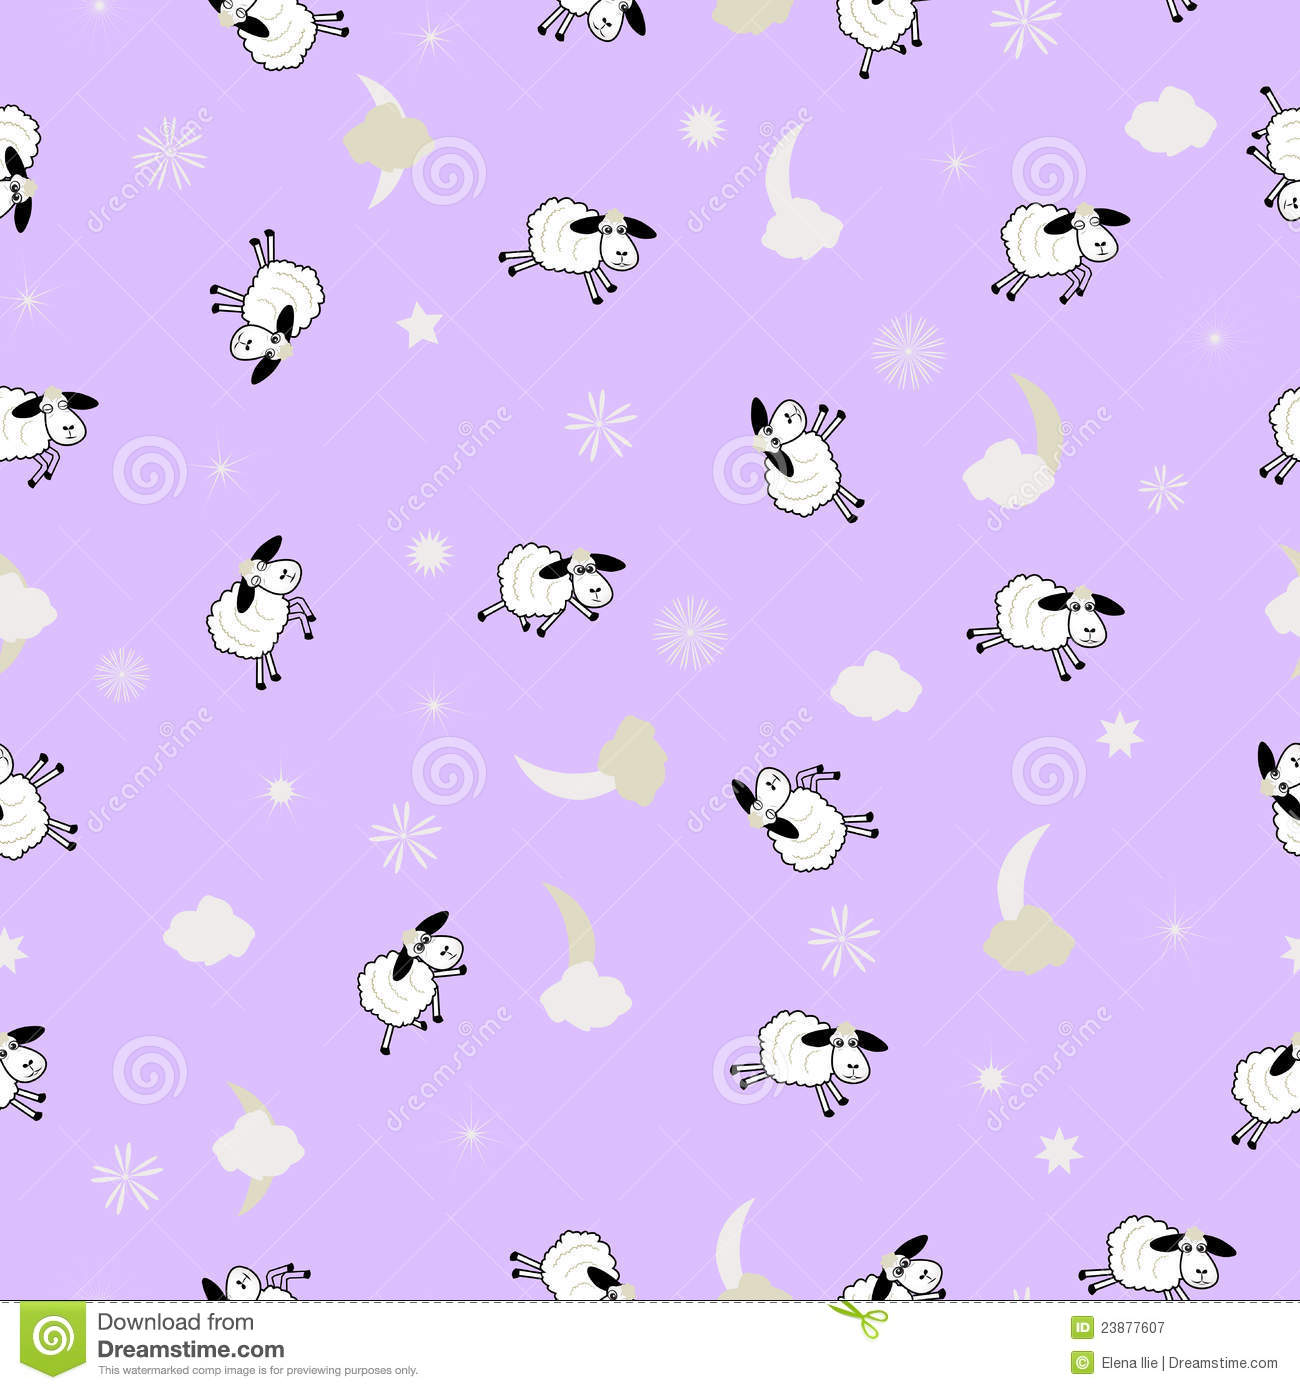 Animal Print Iphone 5 Wallpaper Cute Sheep Background Stock Illustration Illustration Of